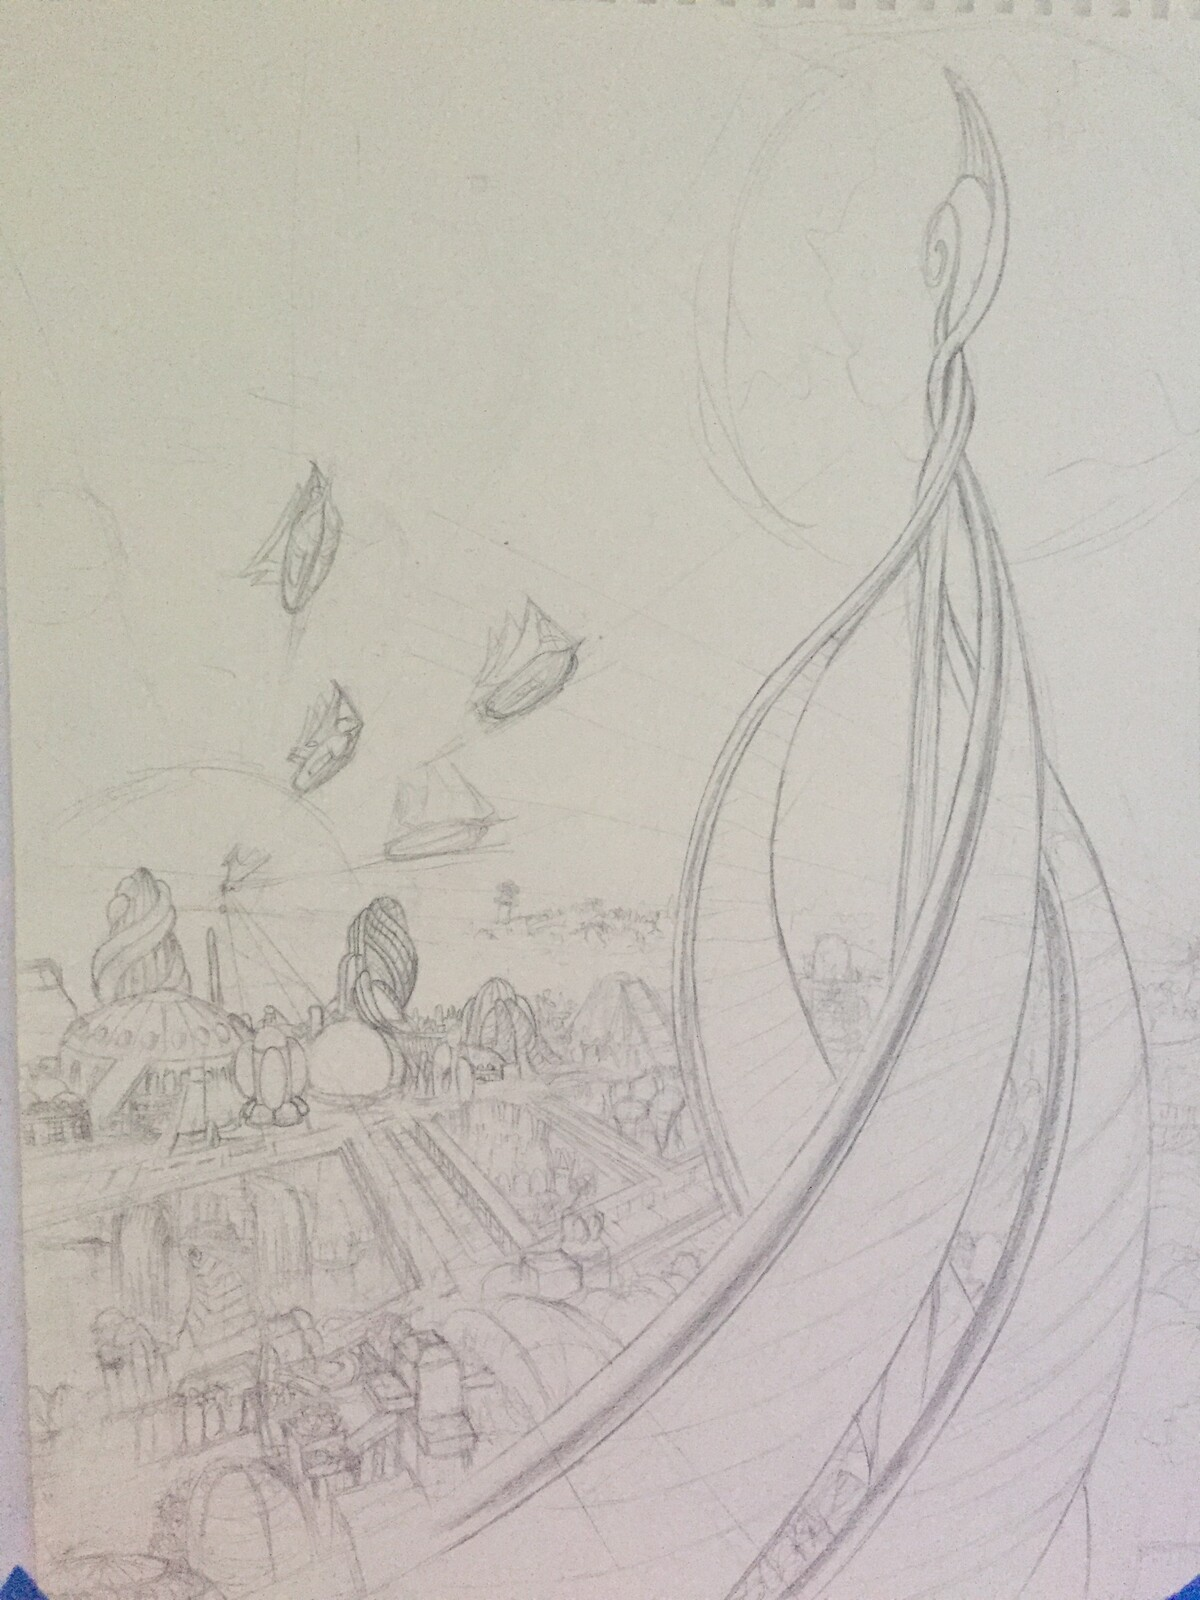 Early sketching, used a lot of grids and perspective lines to make this look believable.